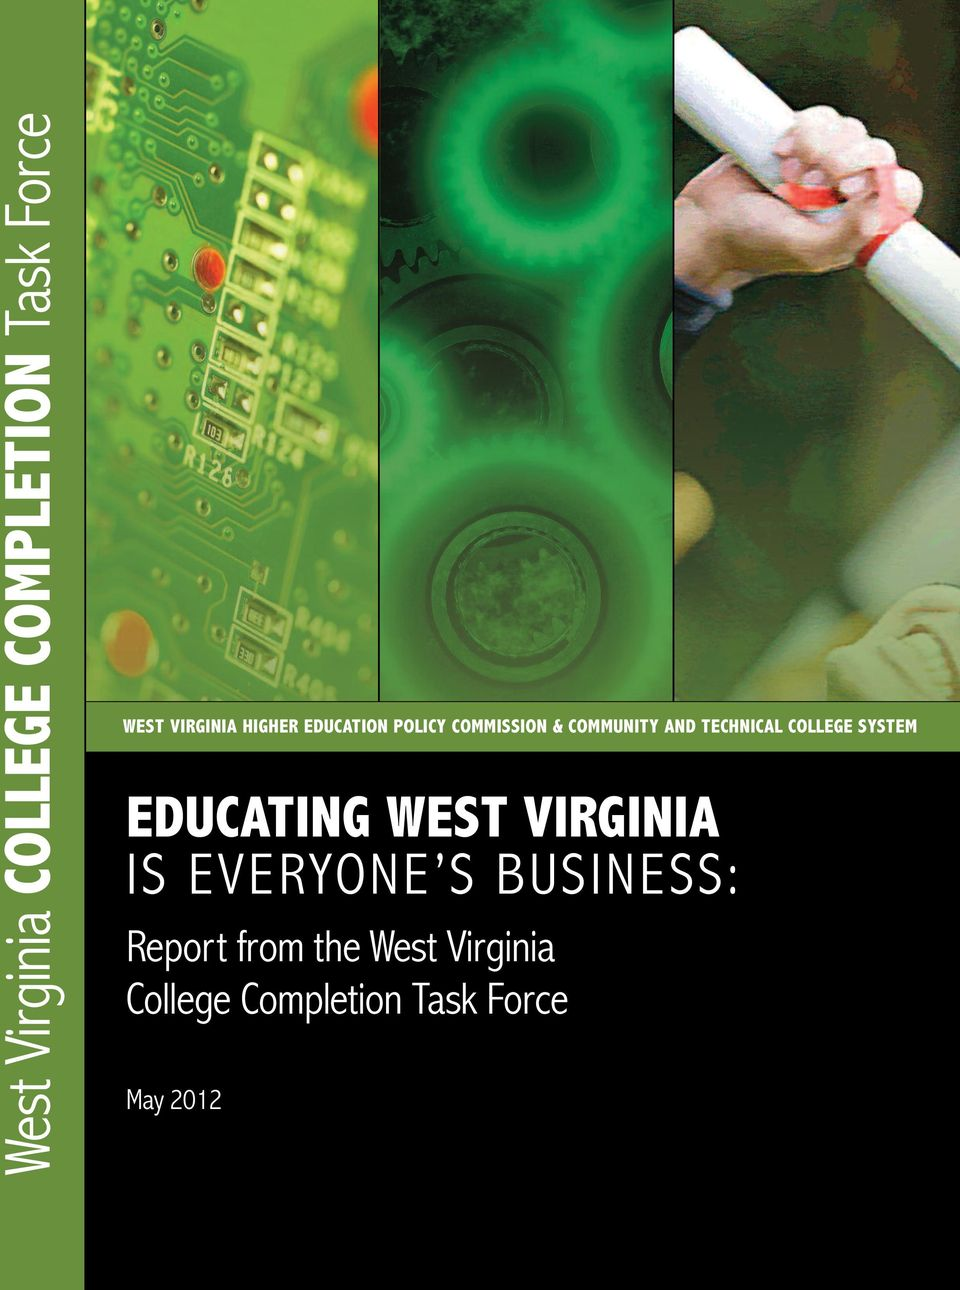 COLLEGE SYSTEM EDUCATING WEST VIRGINIA IS EVERYONE S BUSINESS: